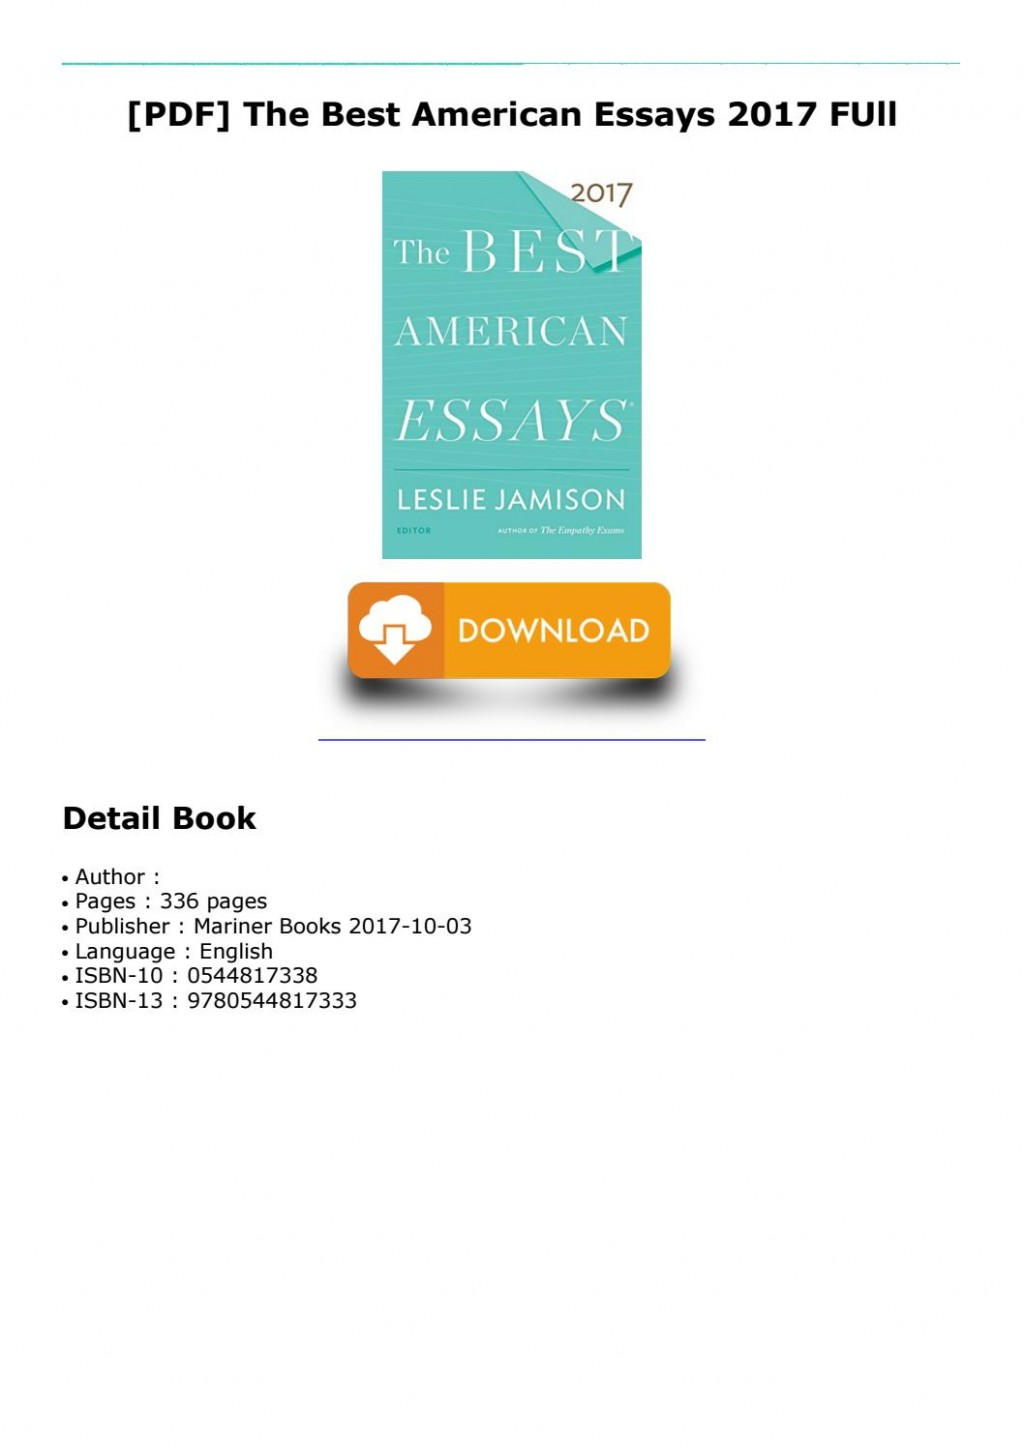 009 Best American Essays Page 1 Essay Astounding 2017 Submissions Pdf Free Download Large